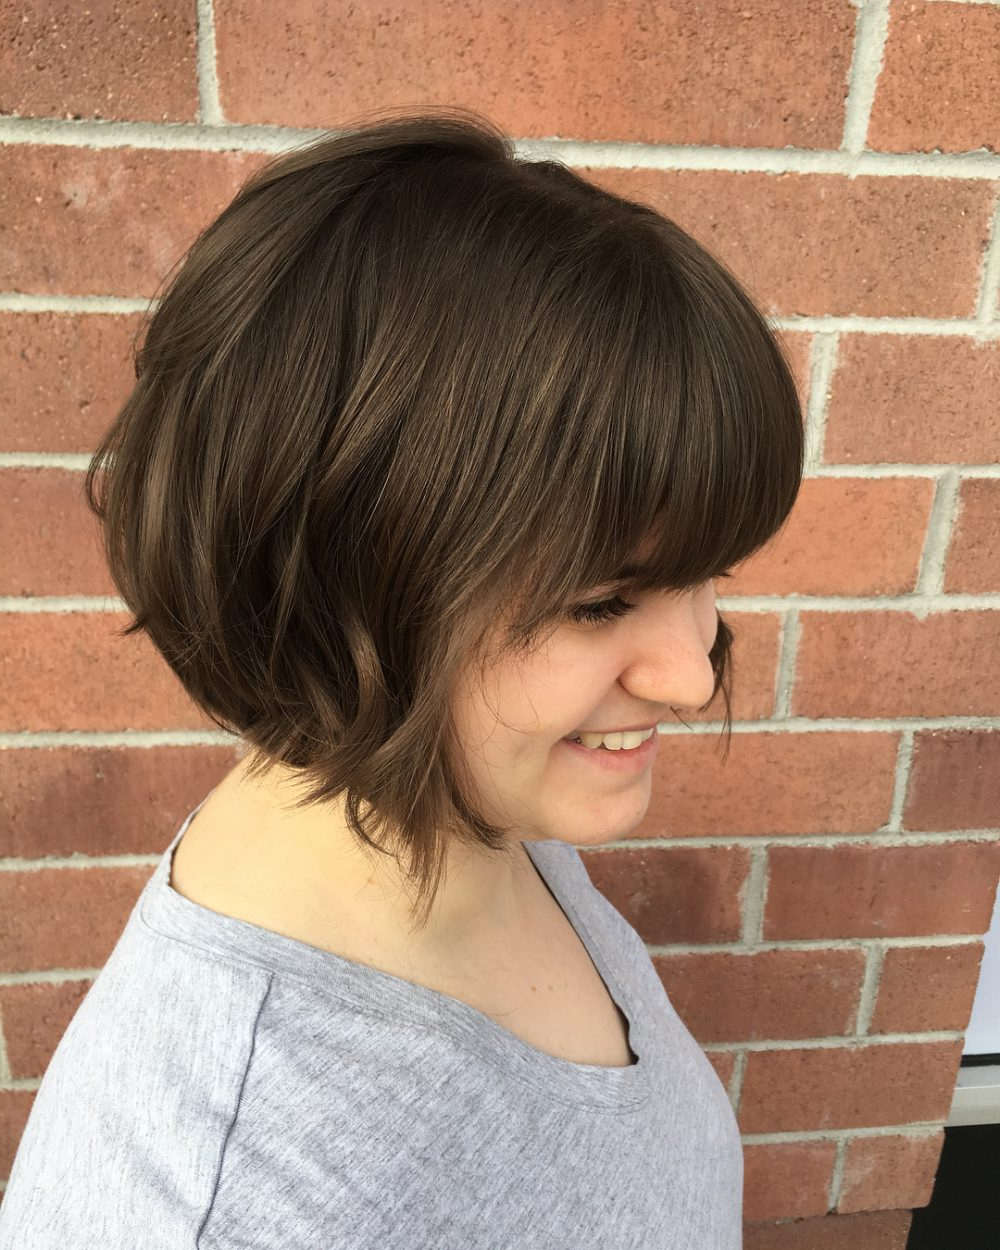 34 Greatest Short Haircuts And Hairstyles For Thick Hair For 2018 With Regard To Short Layered Hairstyles For Thick Hair (View 9 of 20)